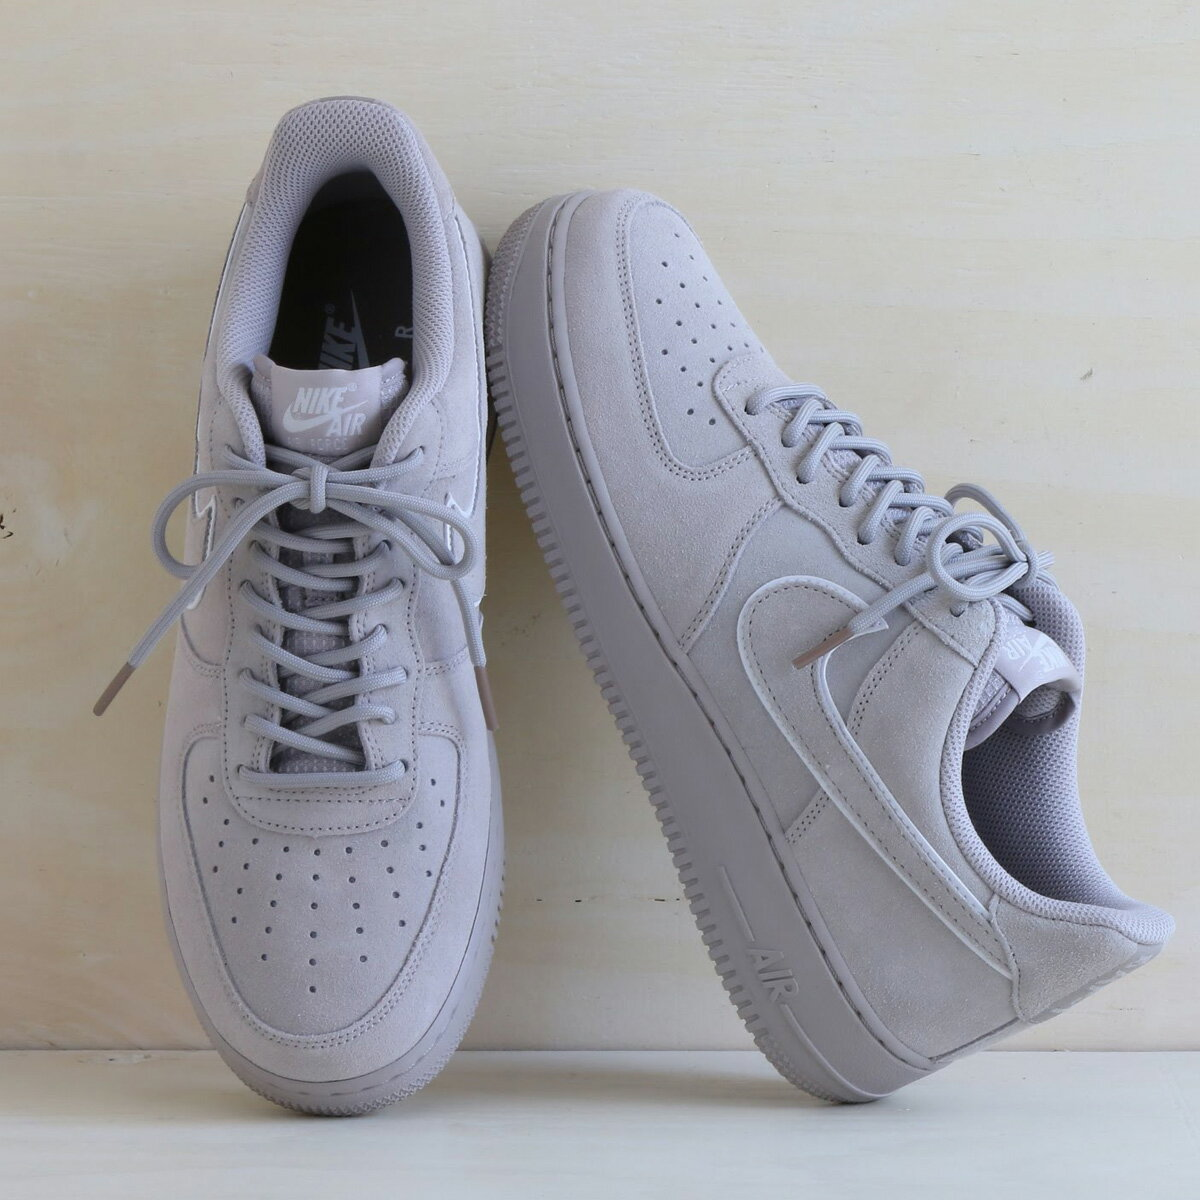 NIKE AIR FORCE 1 '07 LV8 SUEDE (ナイキ エア フォース 1 07 LV8 スエード) MOON PARTICLE/MOON PARTICLE-SEPIA STONE【メンズ スニーカー】18SP-I